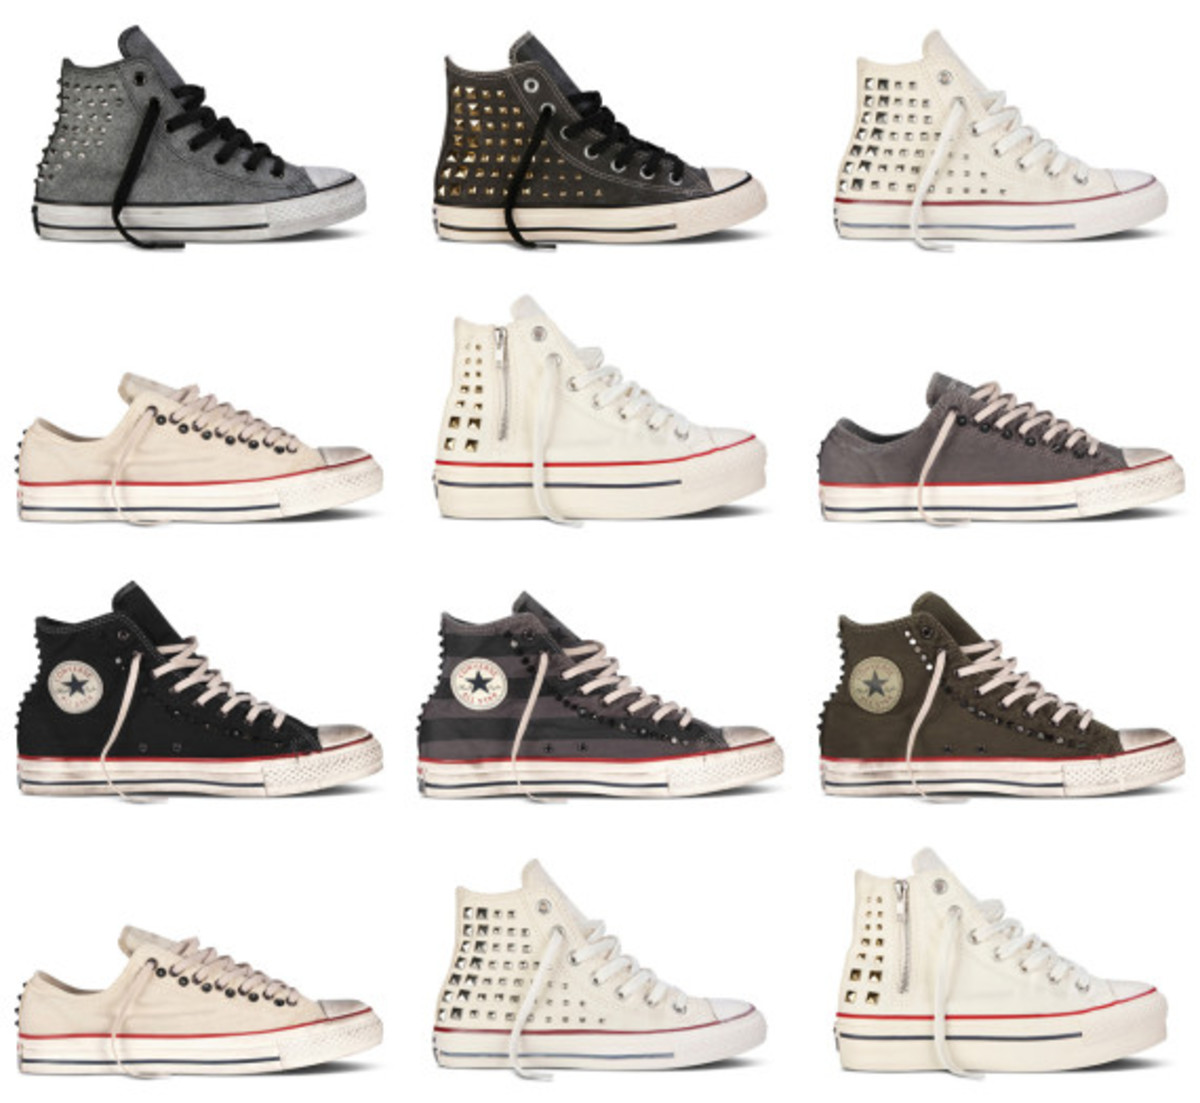 converse-chuck-taylor-all-star-collar-studs-fall-2013-collection-00